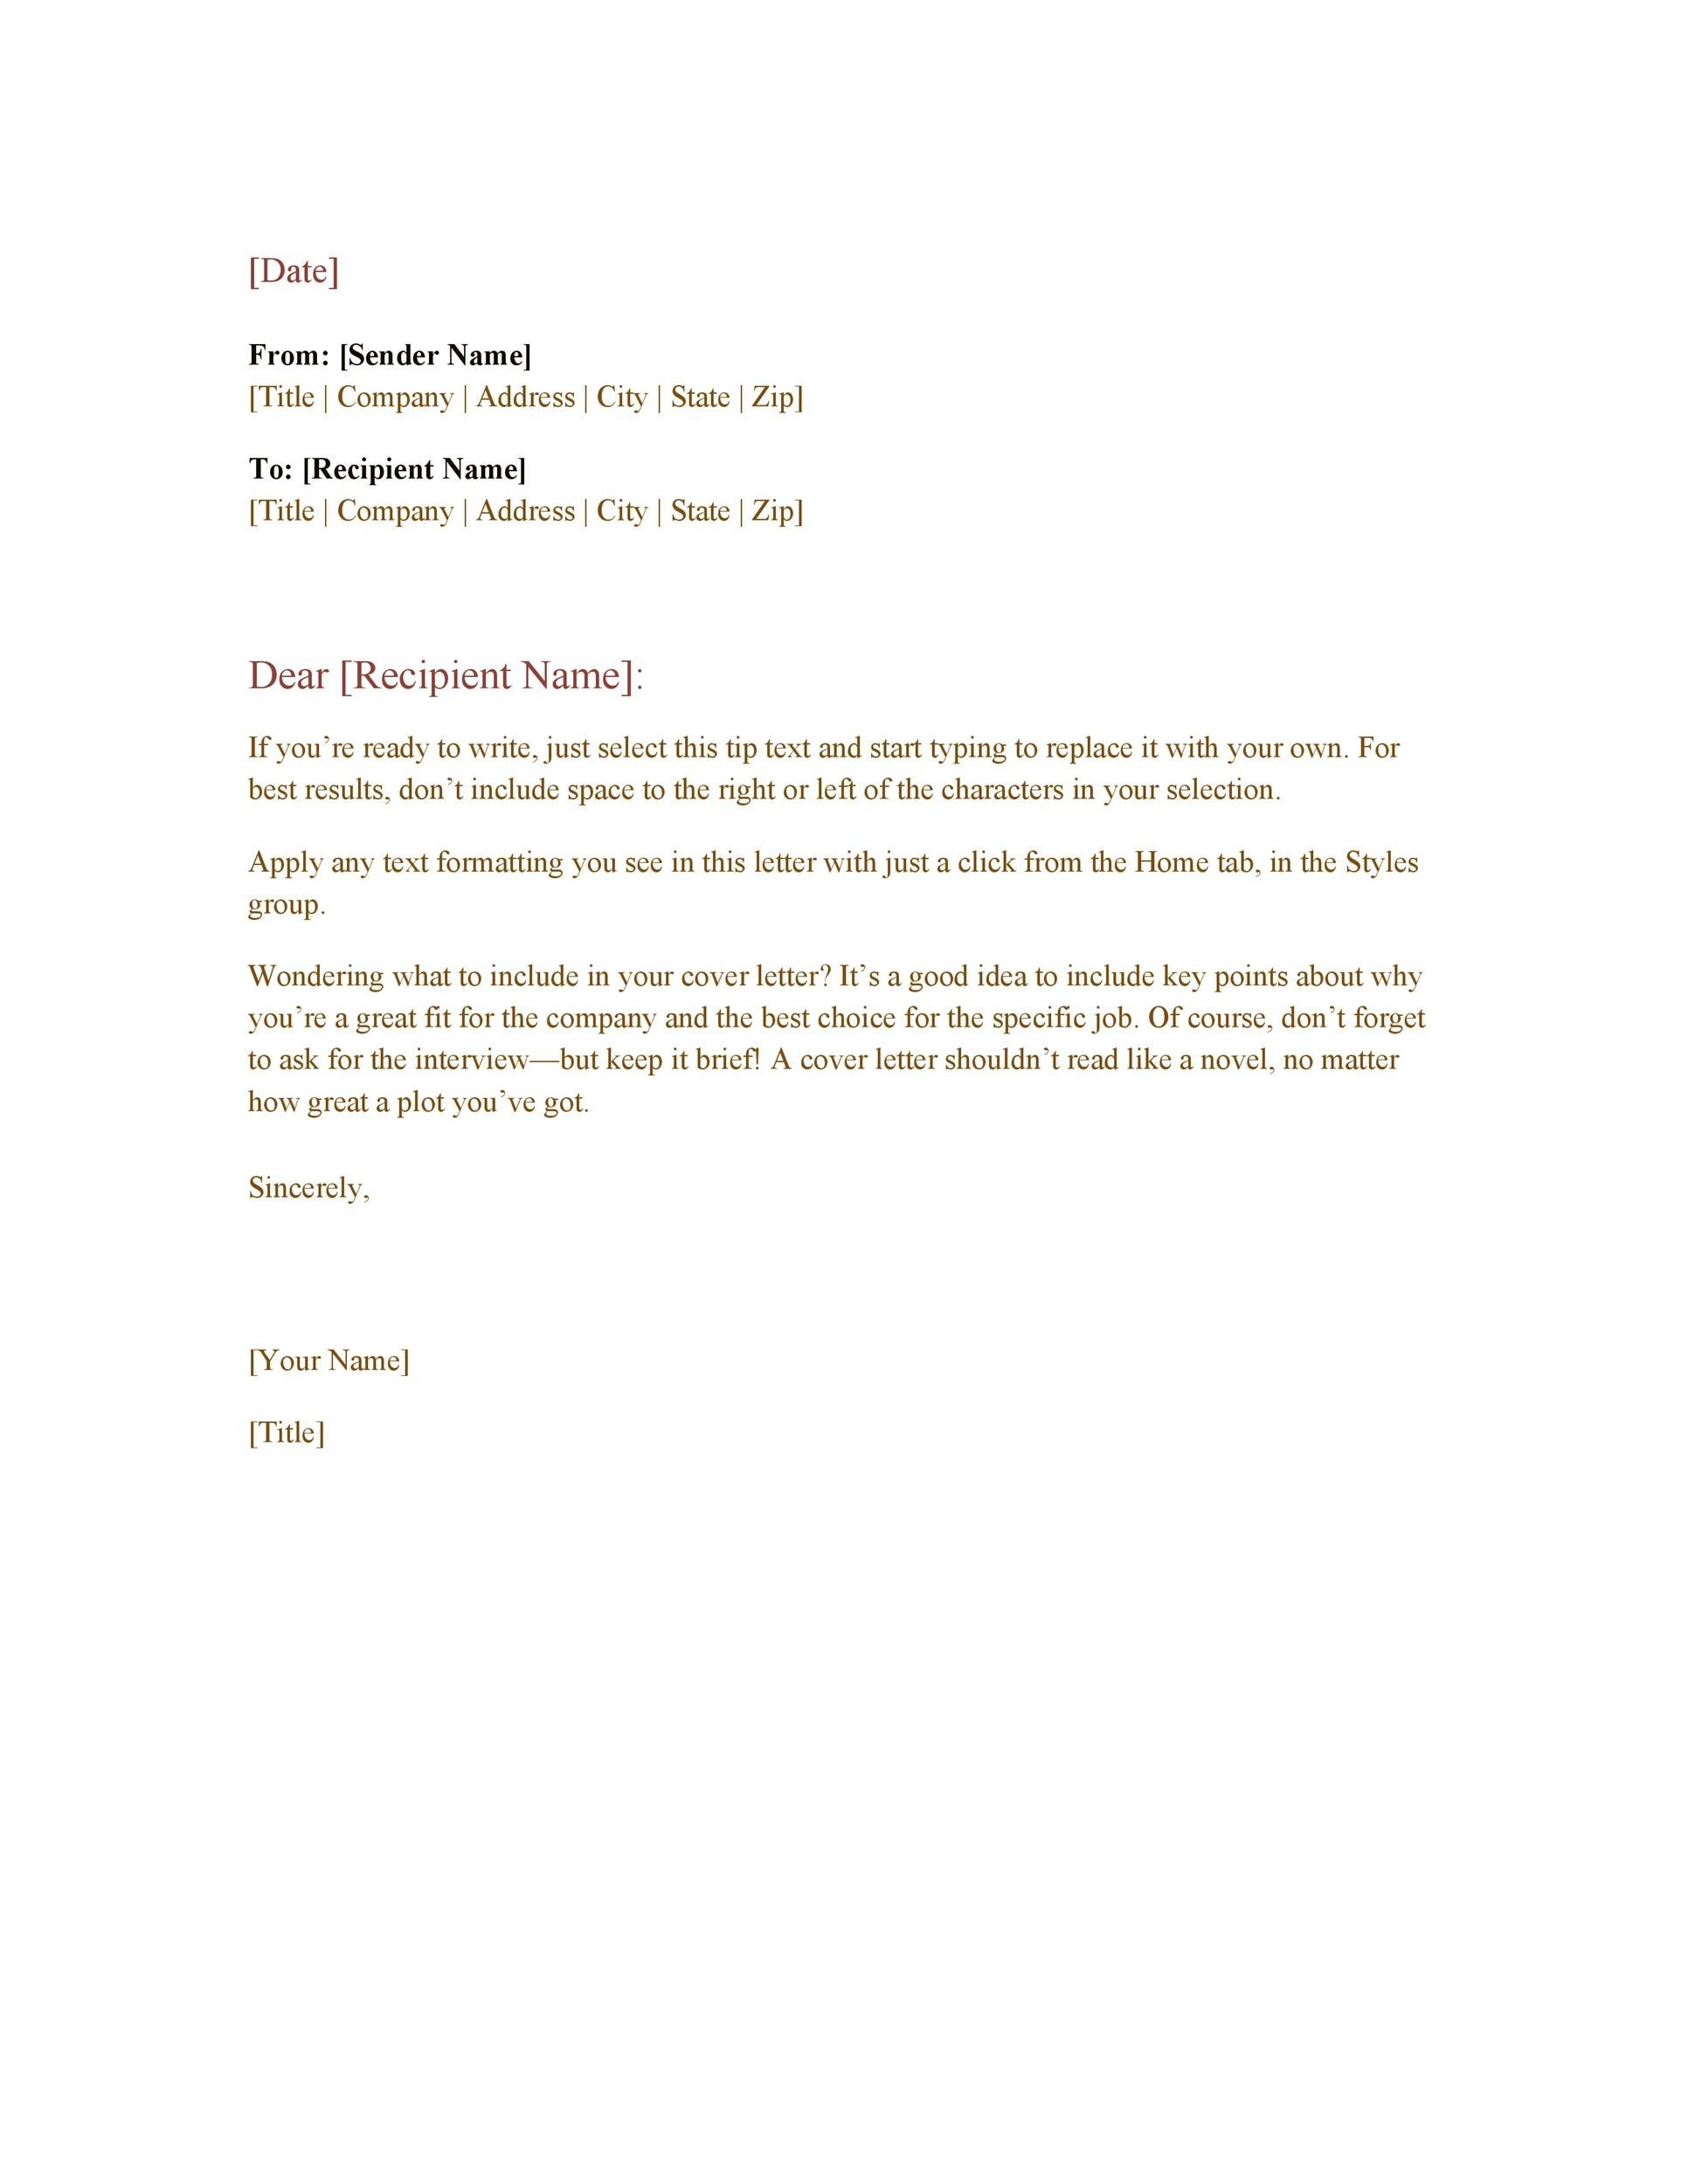 formal business letter 06